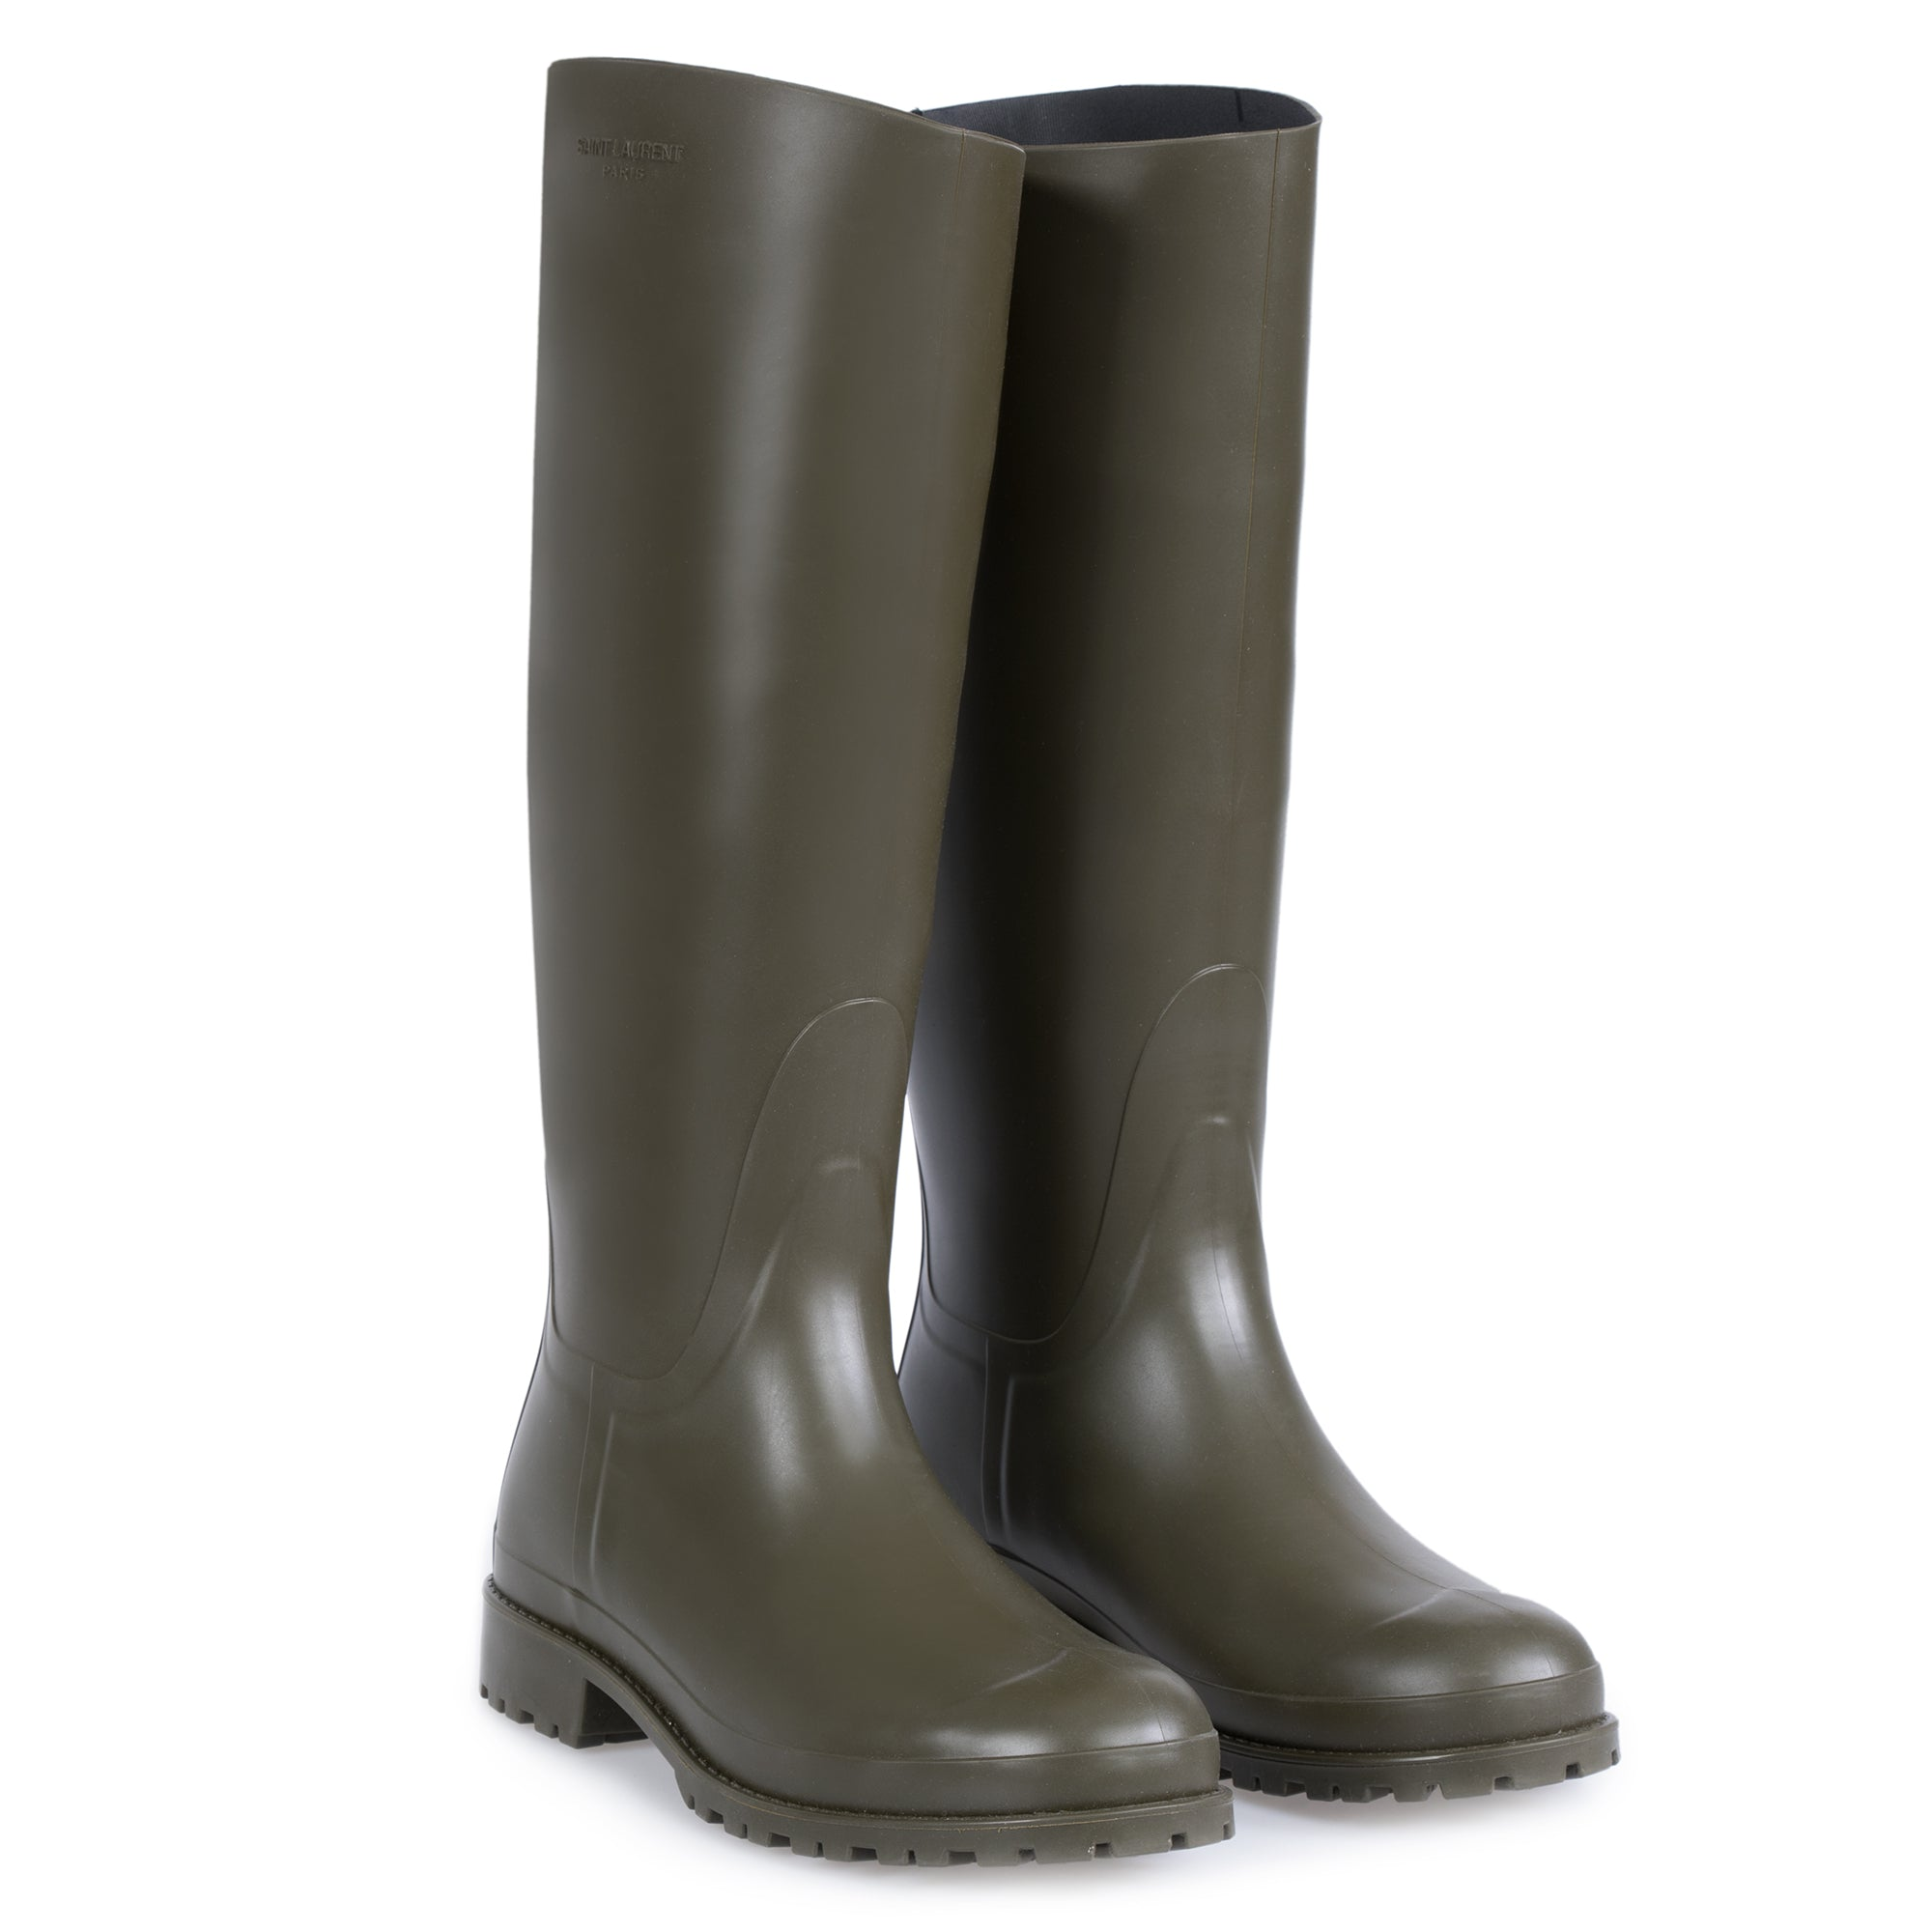 Saint Laurent Olive Green Rain Boots - Size 40